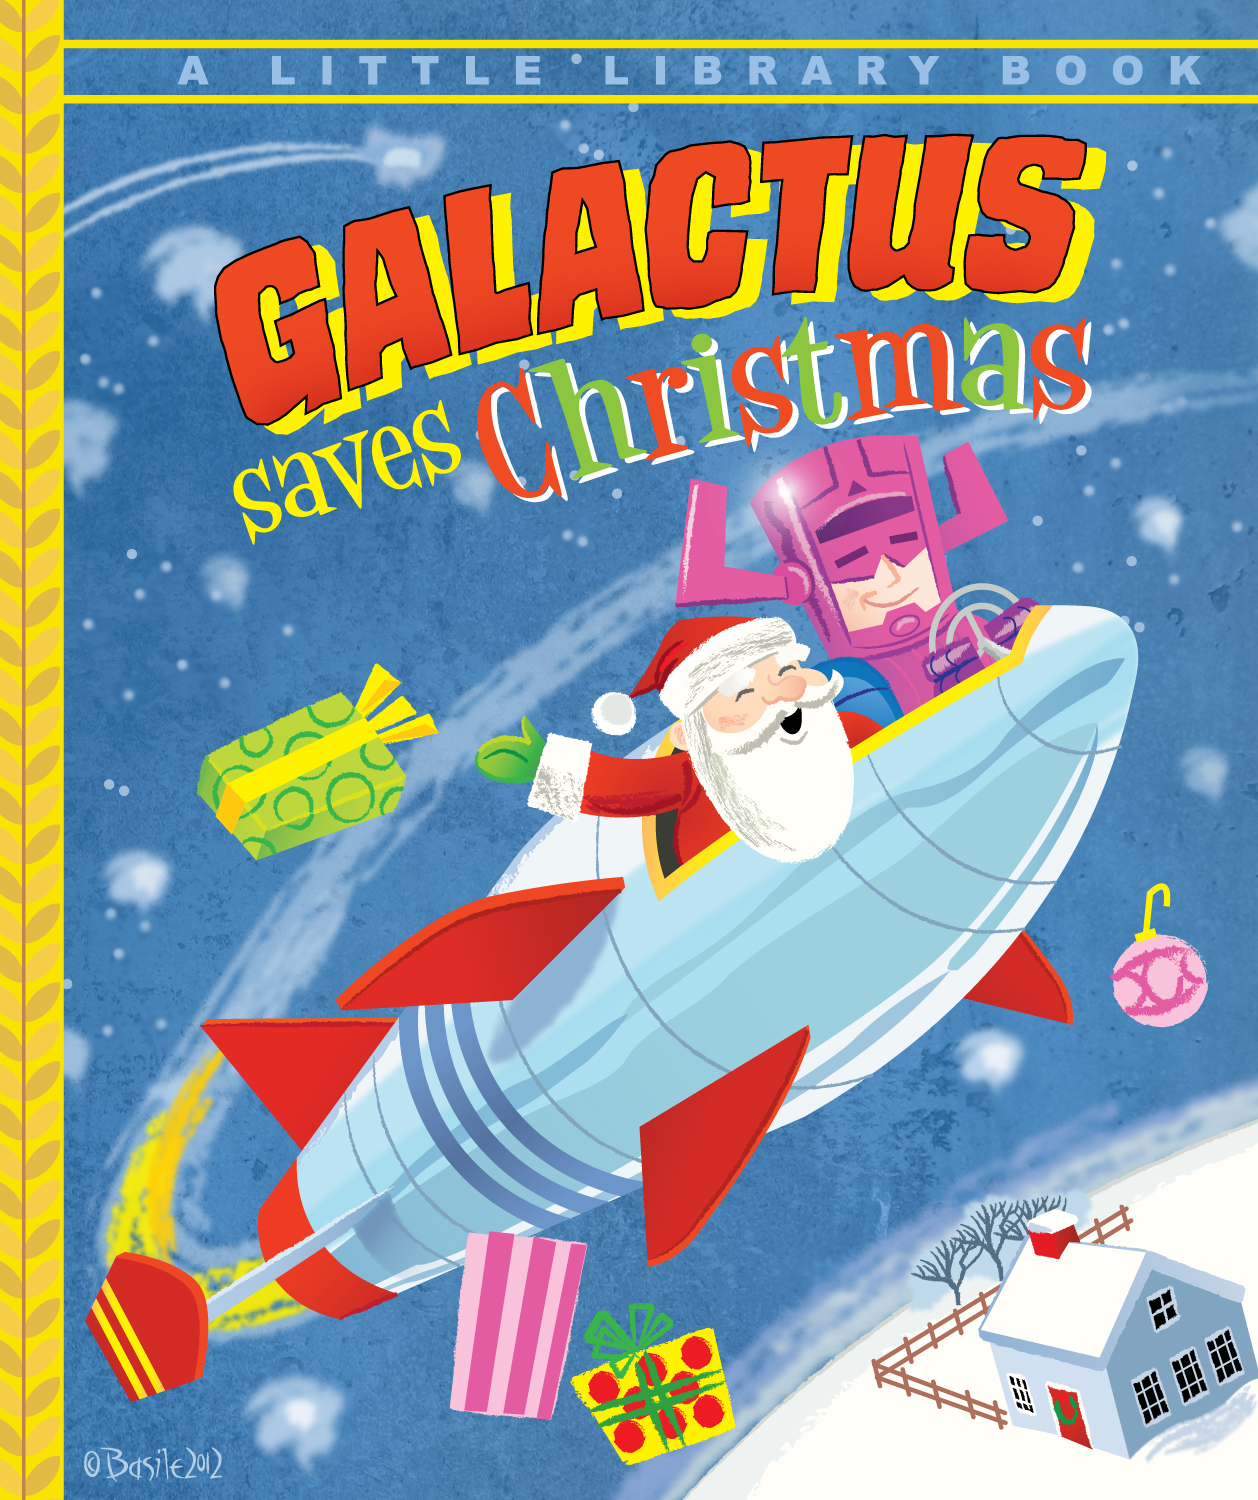 GALACTUS SAVES CHRISTMAS